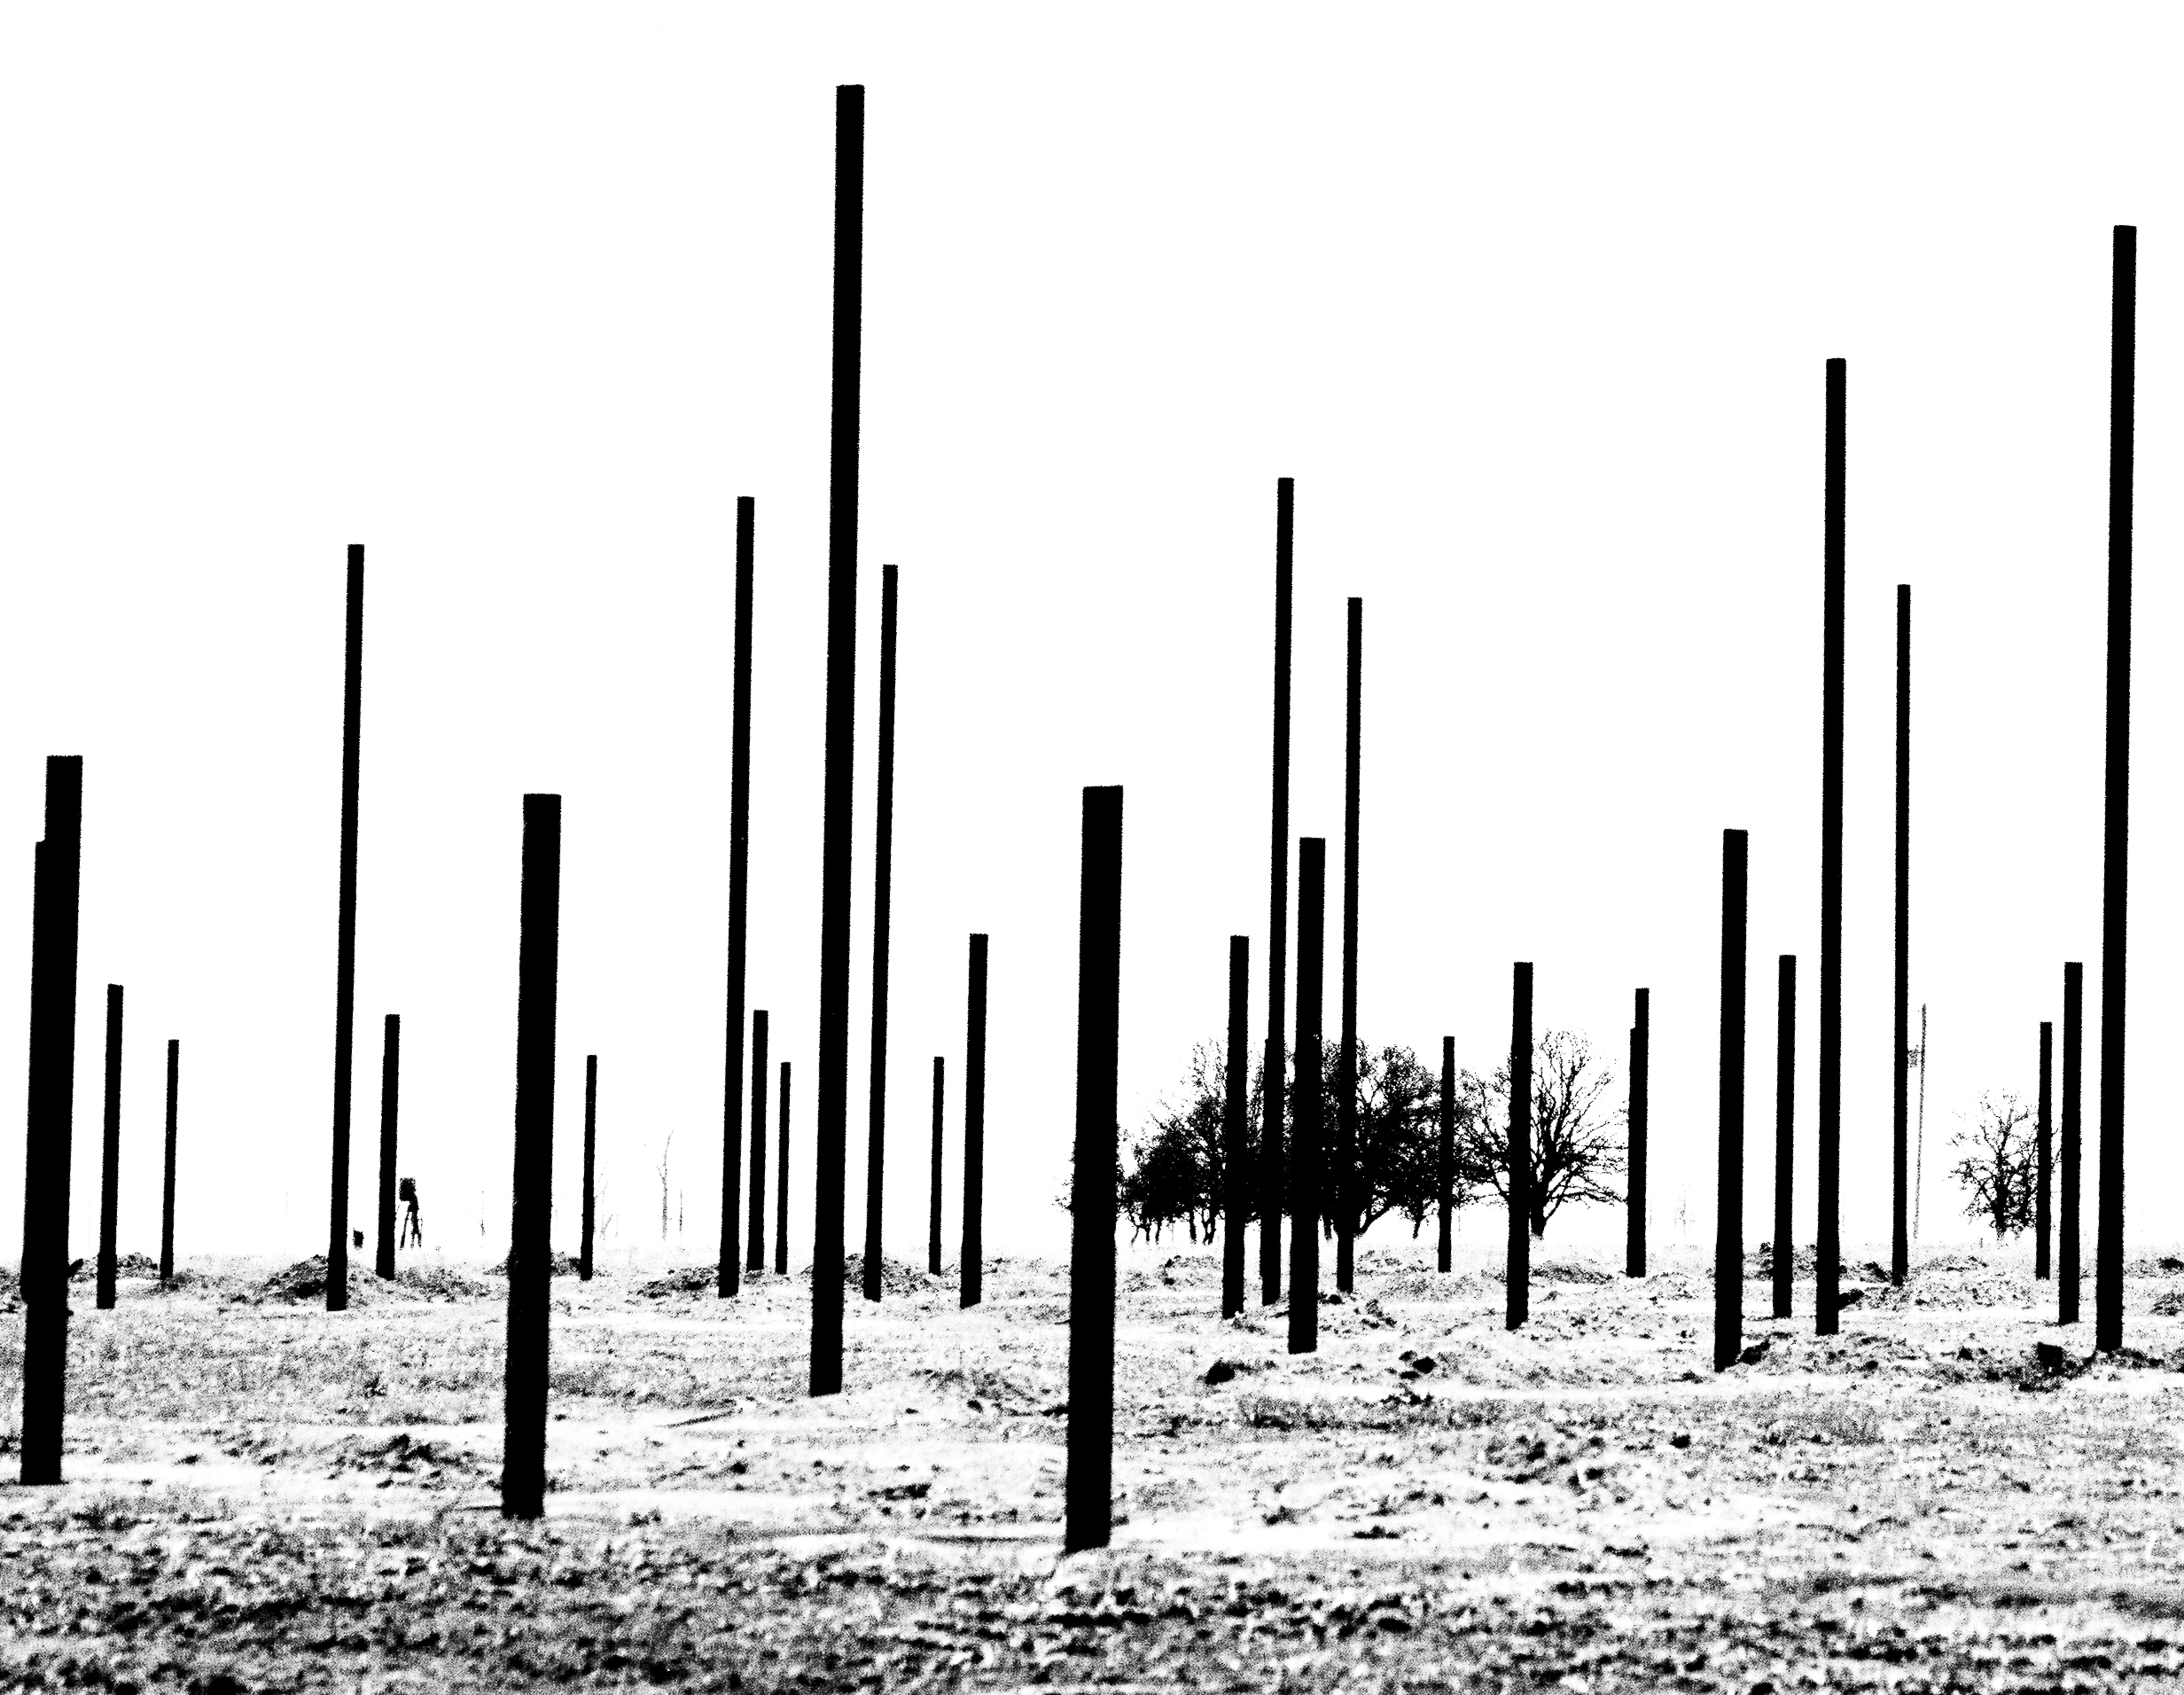 A black and white photograph depicts scrubby trees on an open plain, along with black poles jutting up from the ground